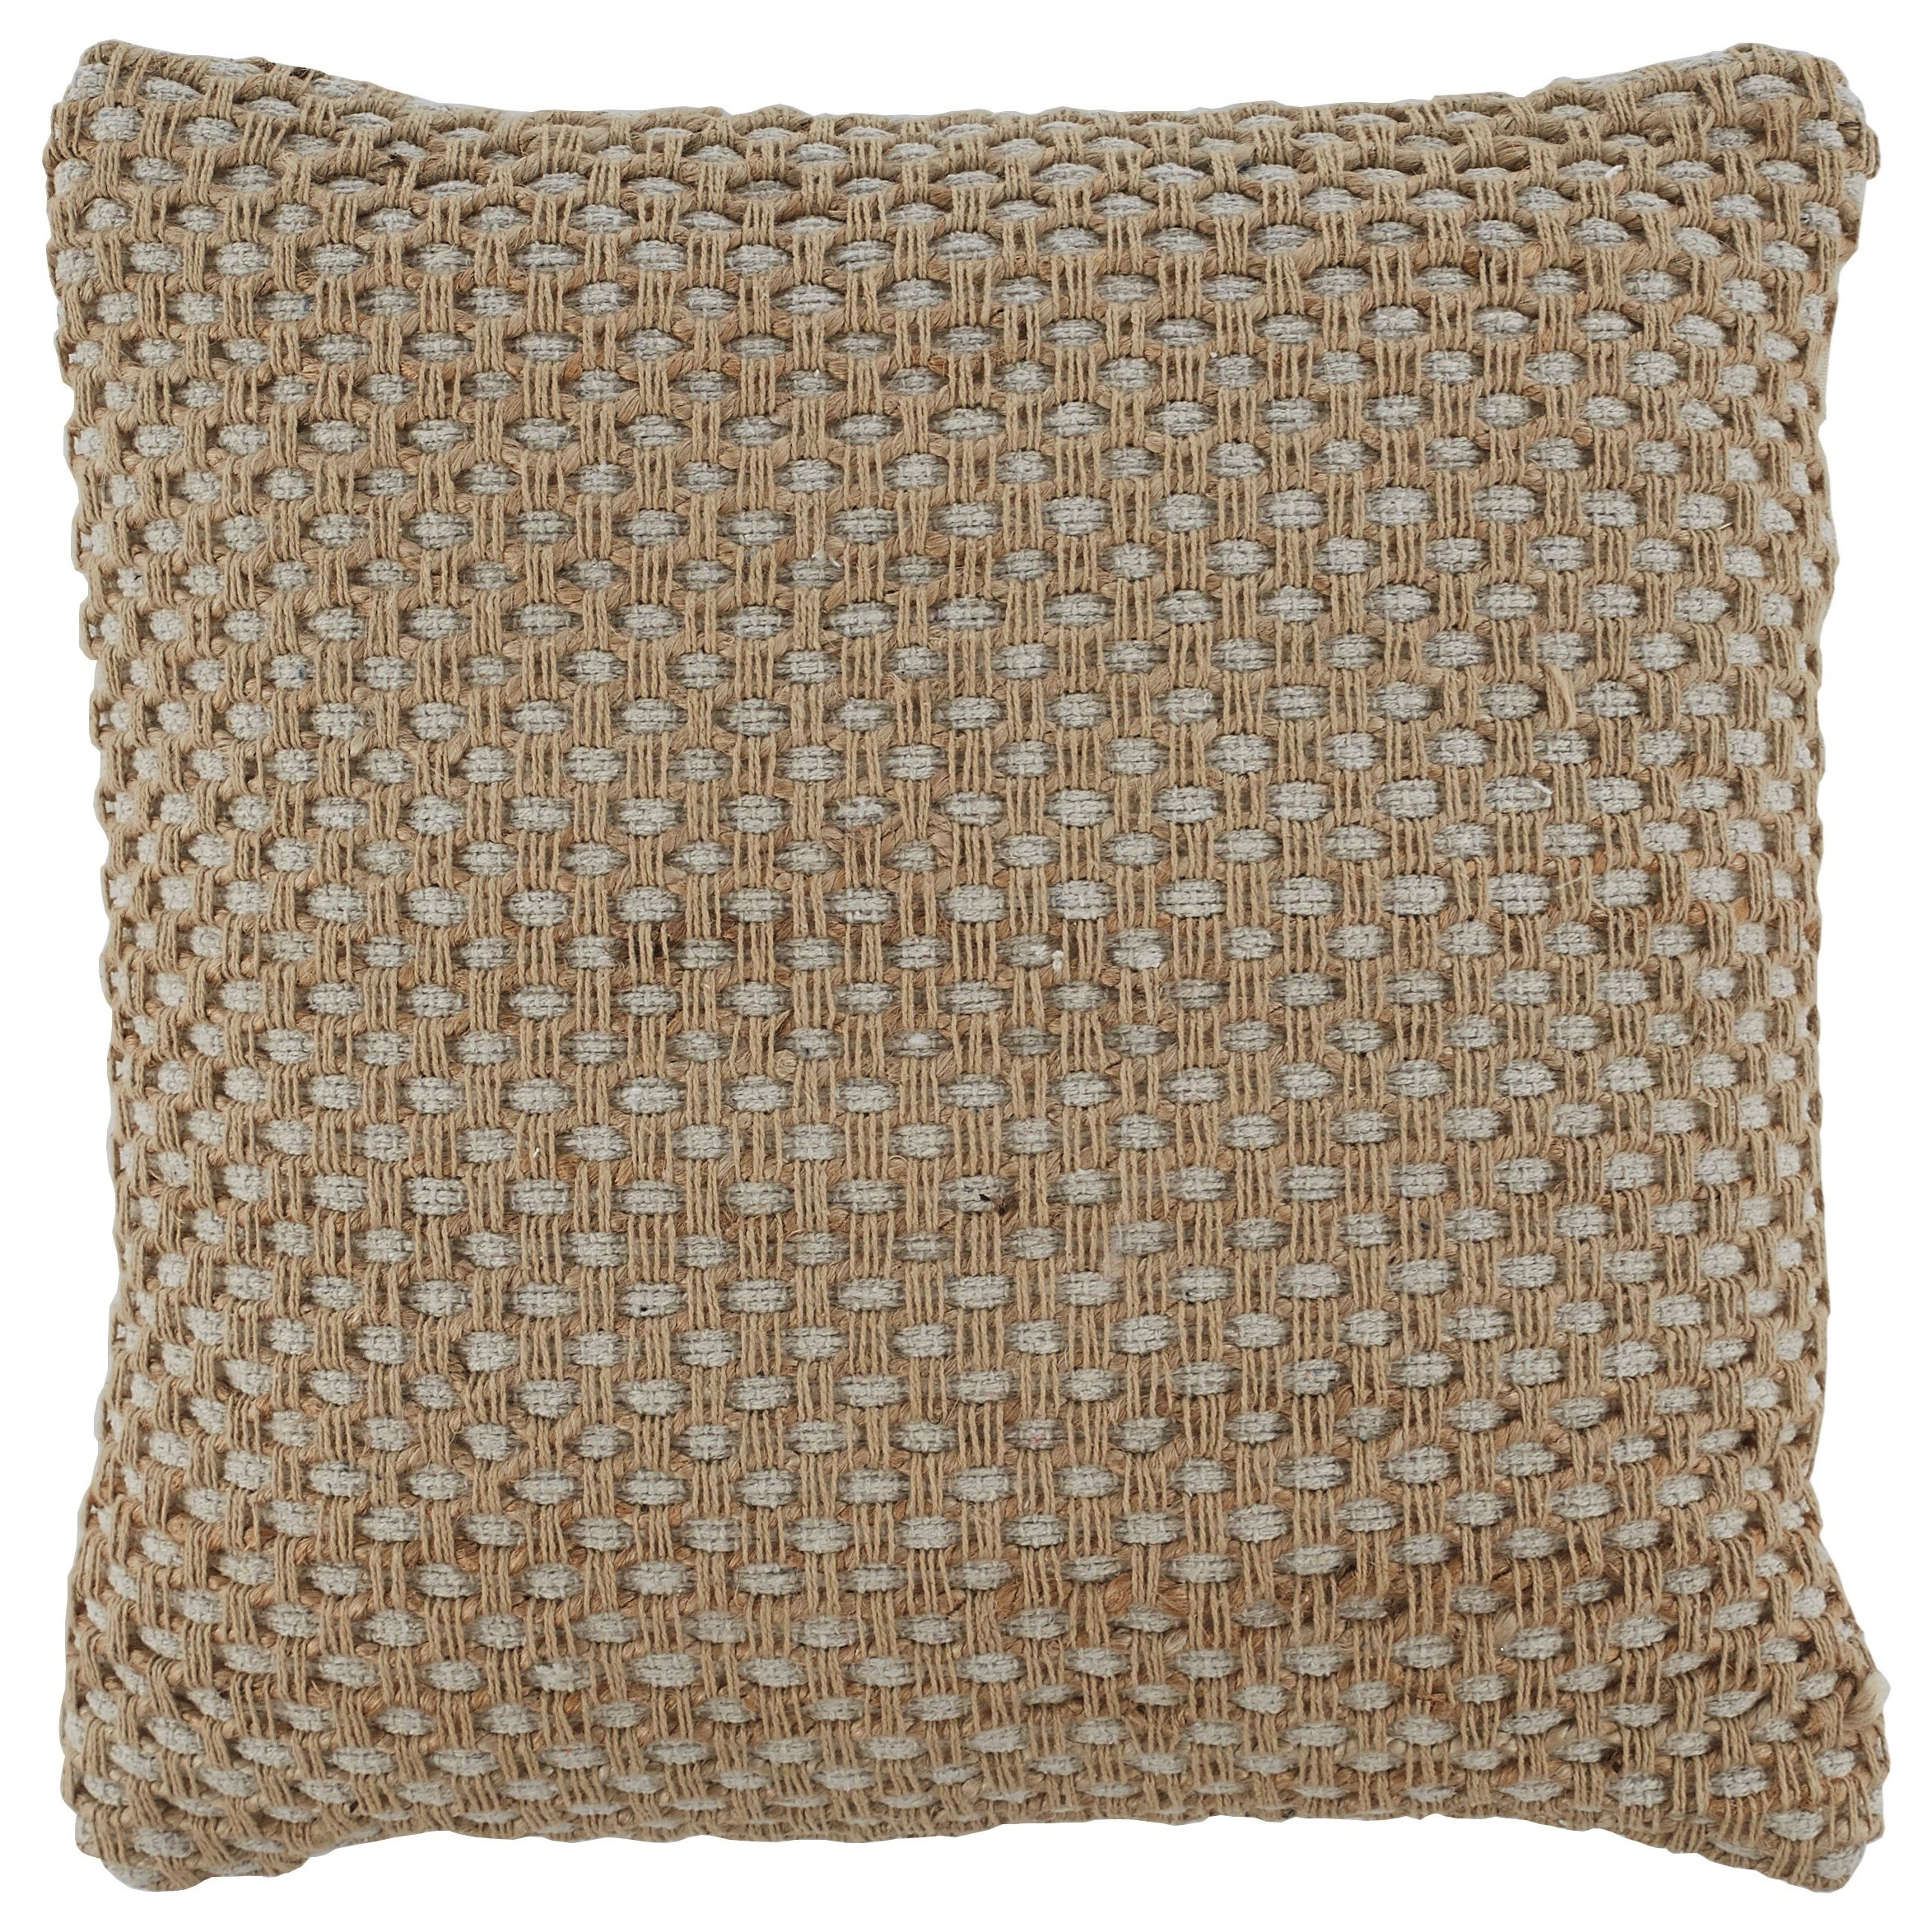 Pillows Matilde Natural Pillow by Signature Design by Ashley at Zak's Warehouse Clearance Center